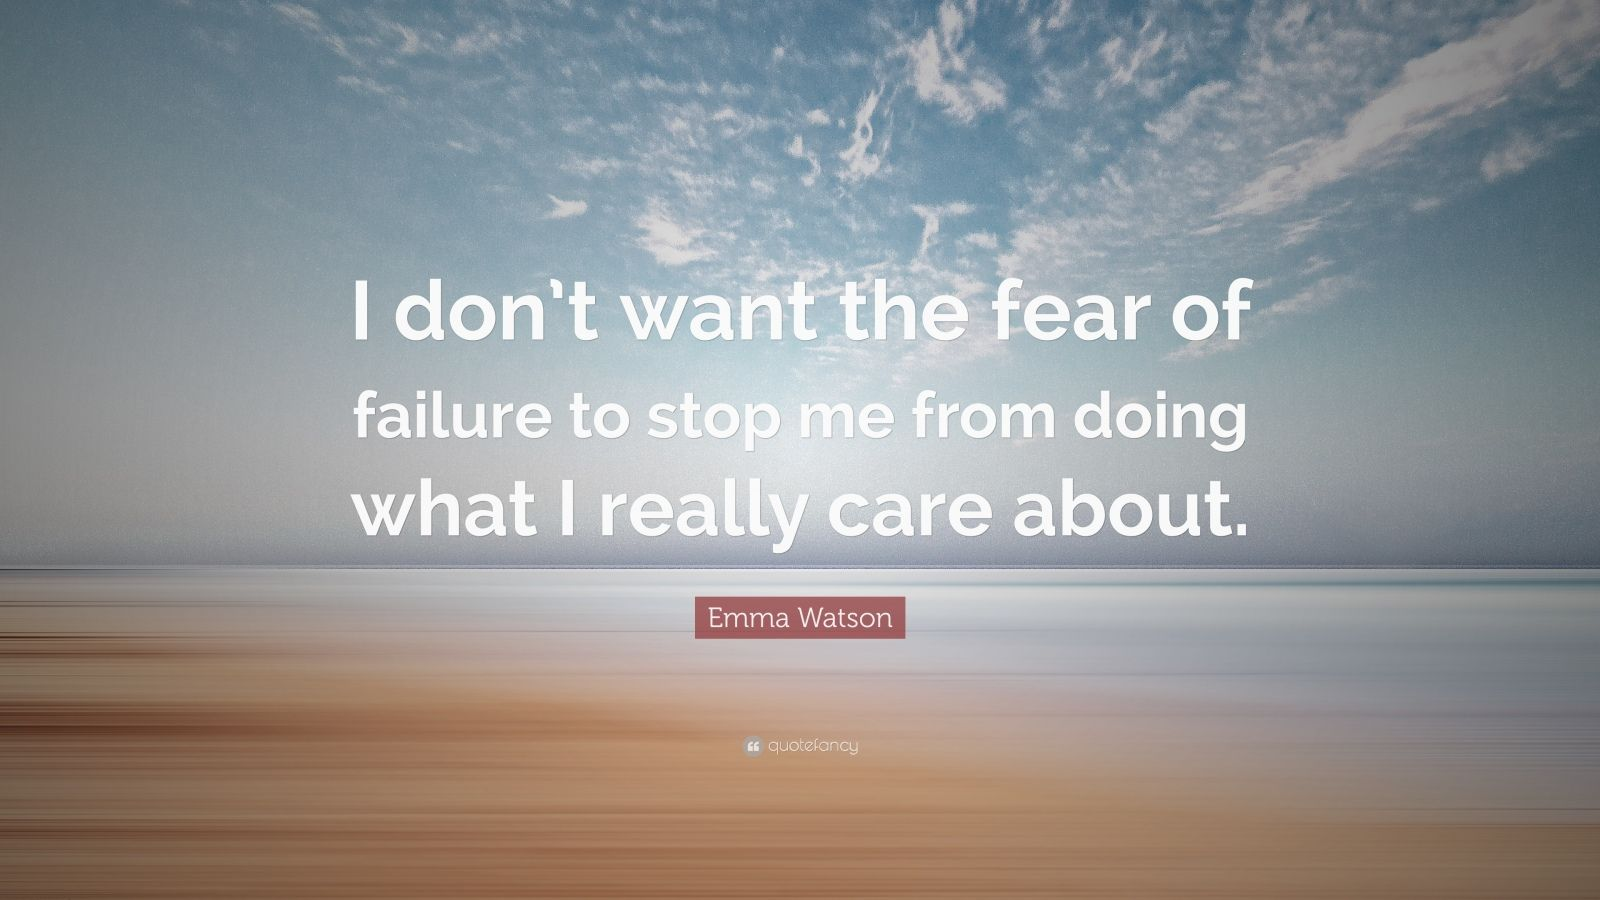 """Emma Watson Quote: """"I don't want the fear of failure to stop me from doing what I really care about."""""""